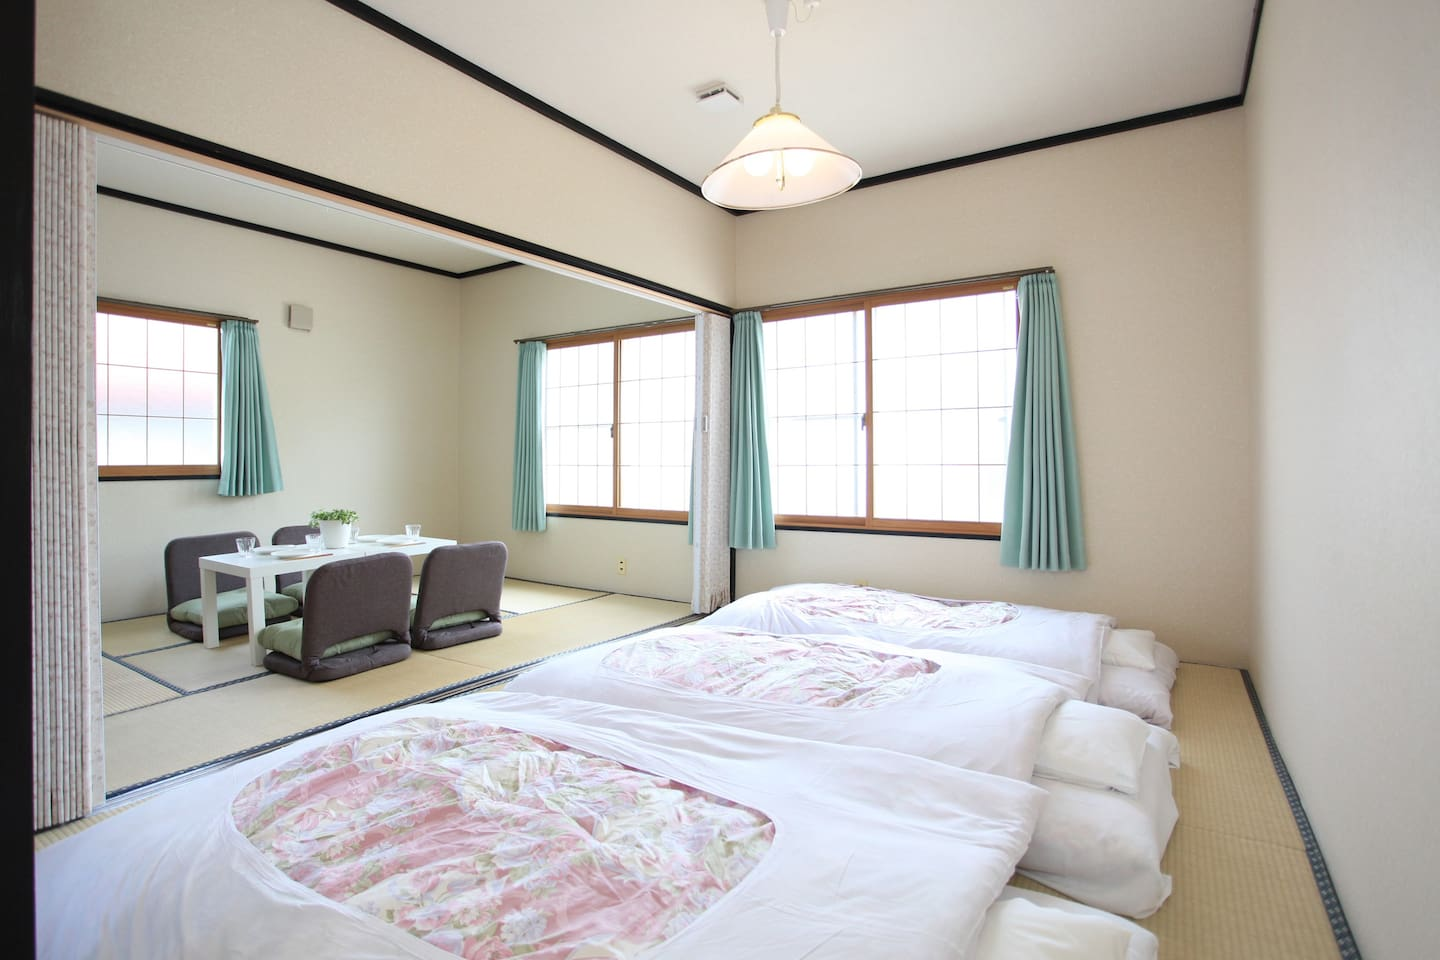 Clean & Cozy Japanese Room.